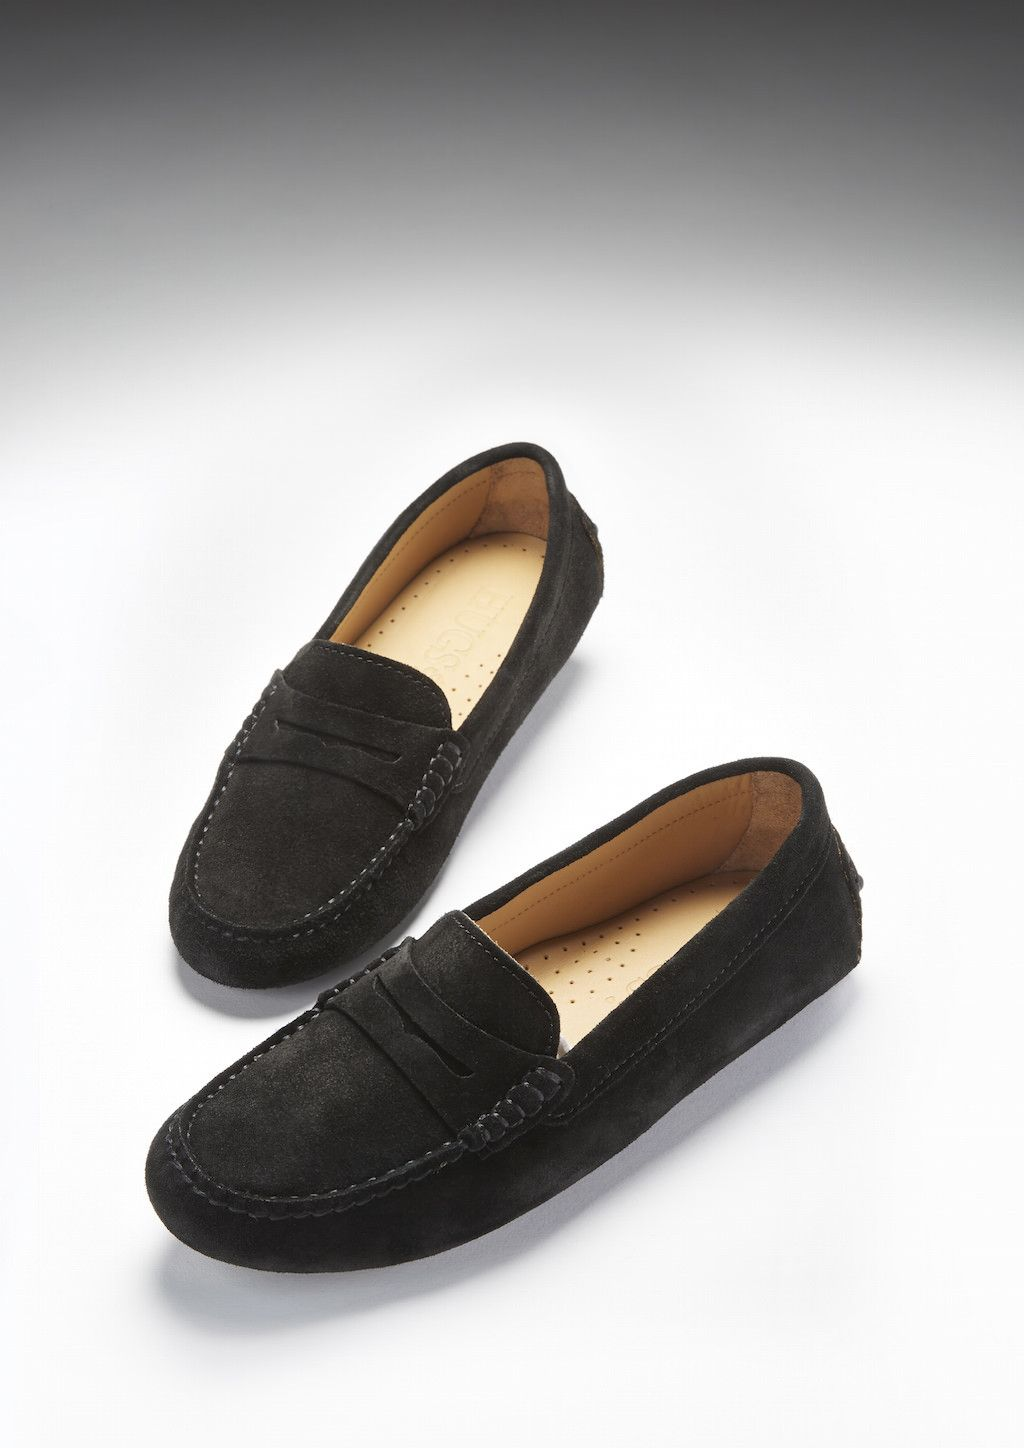 541de4ff1a2 Women s Penny Driving Loafers